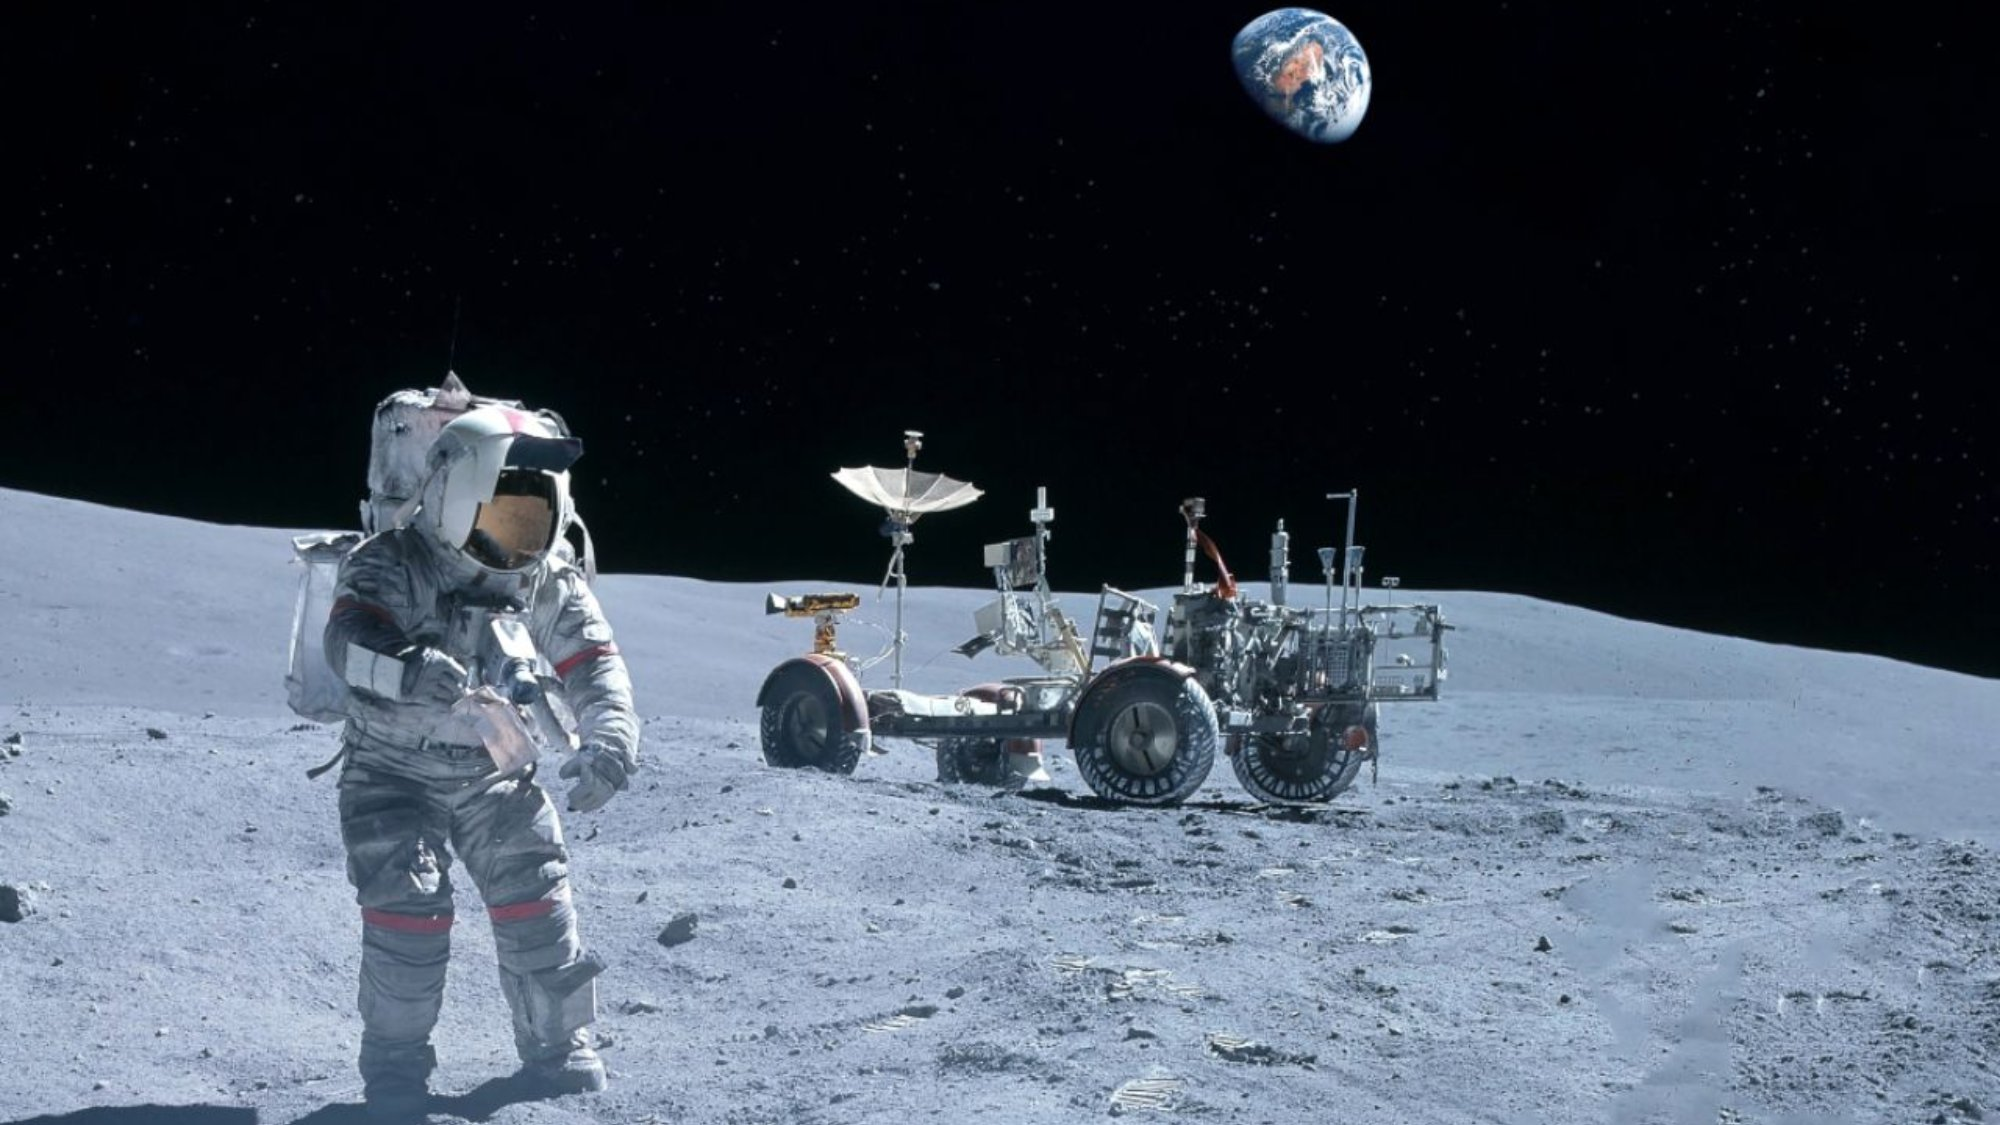 An astronaut and lunar rover on the lunar surface.